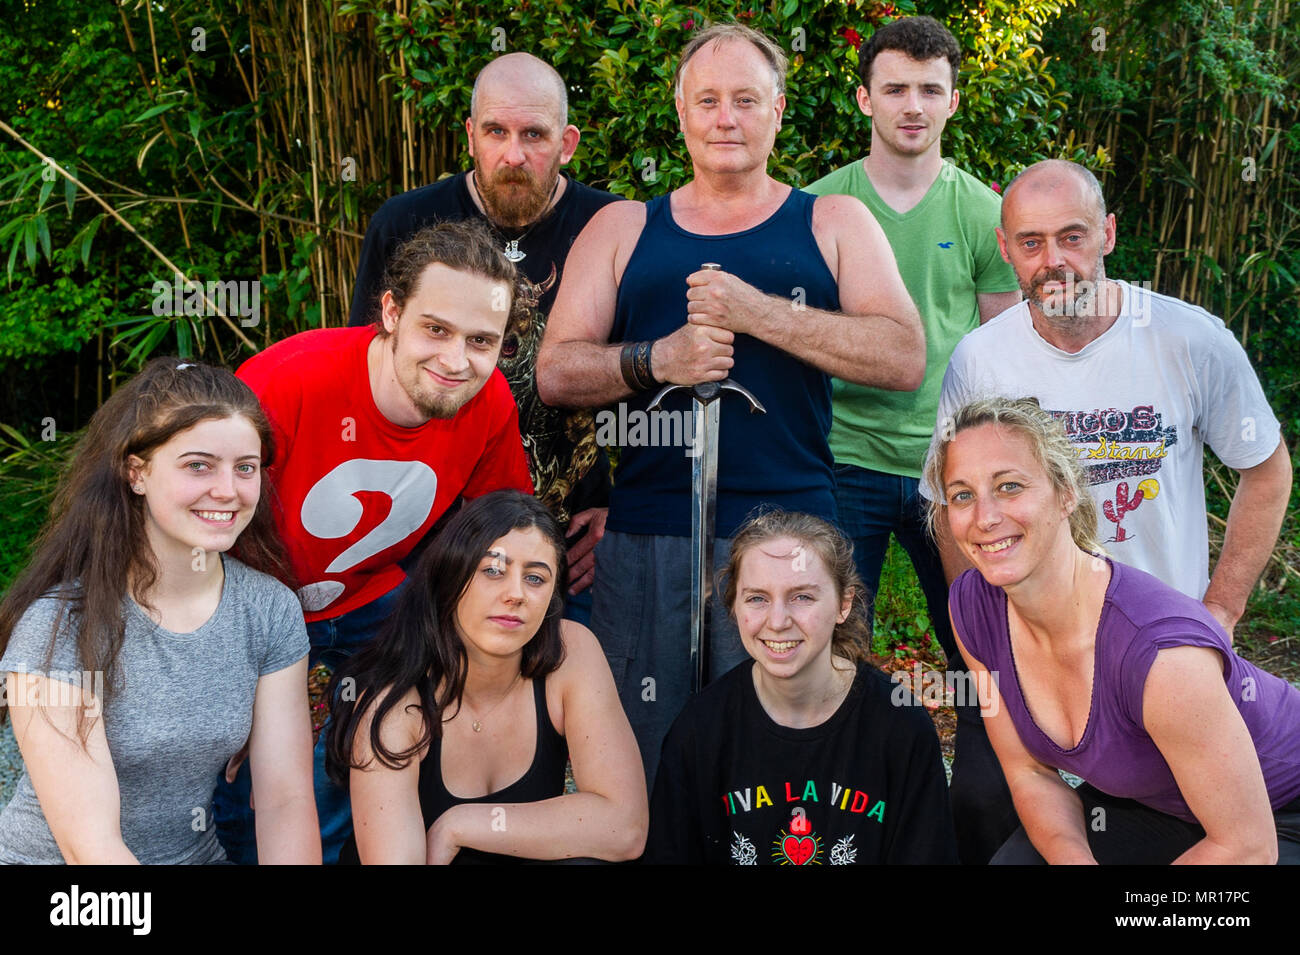 Schull, Ireland. 25th May 2018. Film stunt actor Peter Dillon (holding sword) and fellow stunt actor Caroline Simonnet (bottom right) are pictured with the workshop attendees after their practical stunt workshop called: 'The Dynamics of Sword Fighting for Camera'.  The festival runs until Sunday. Credit: Andy Gibson/Alamy Live News. - Stock Image